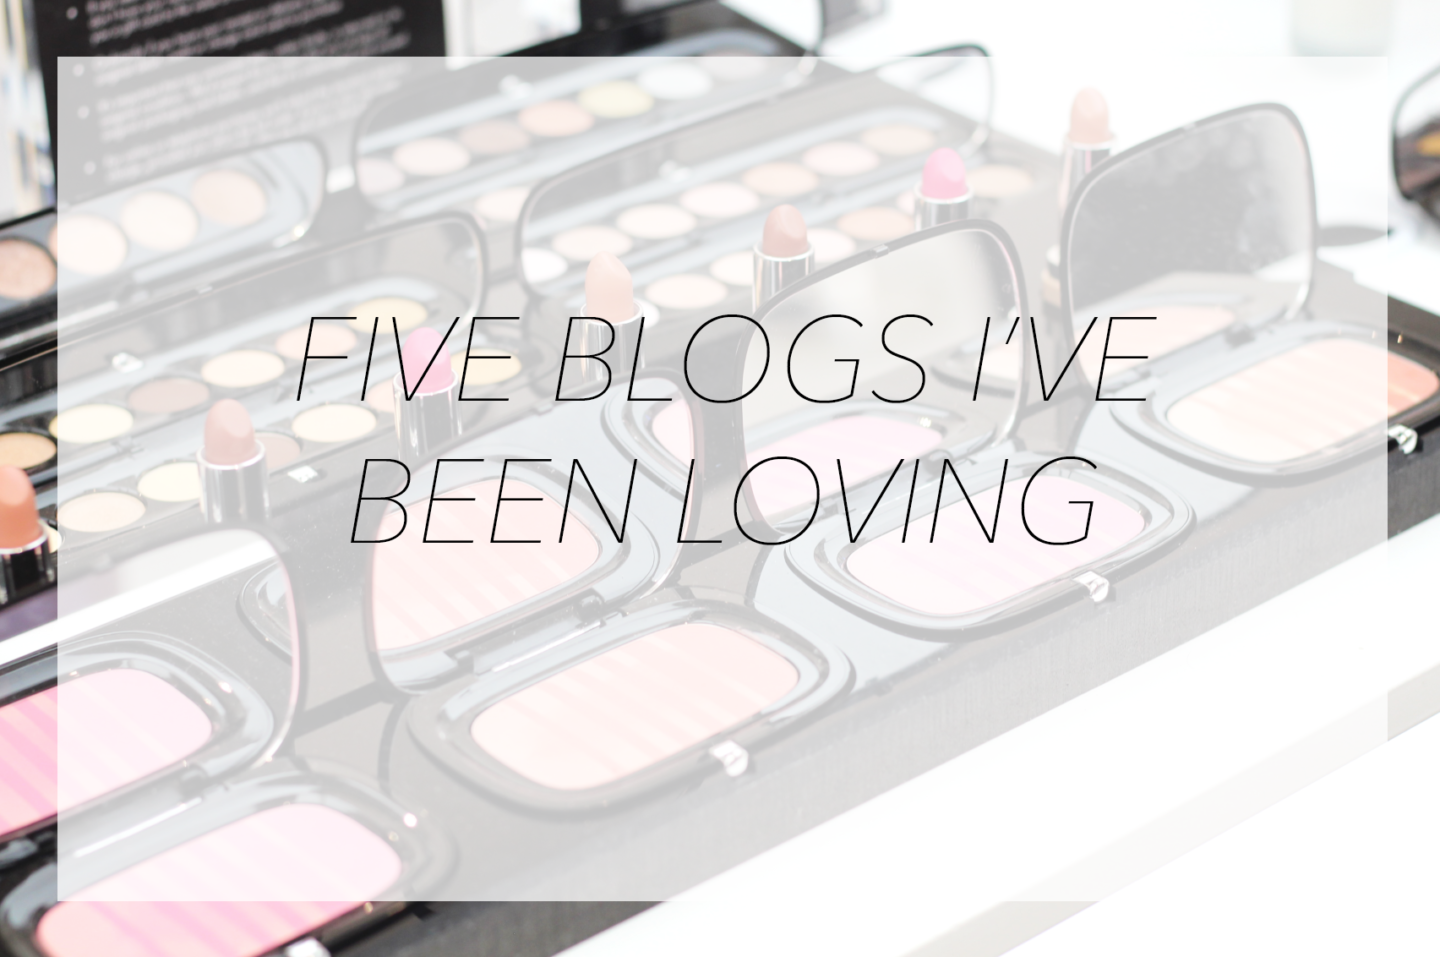 FIVE BLOGS I'VE BEEN LOVING